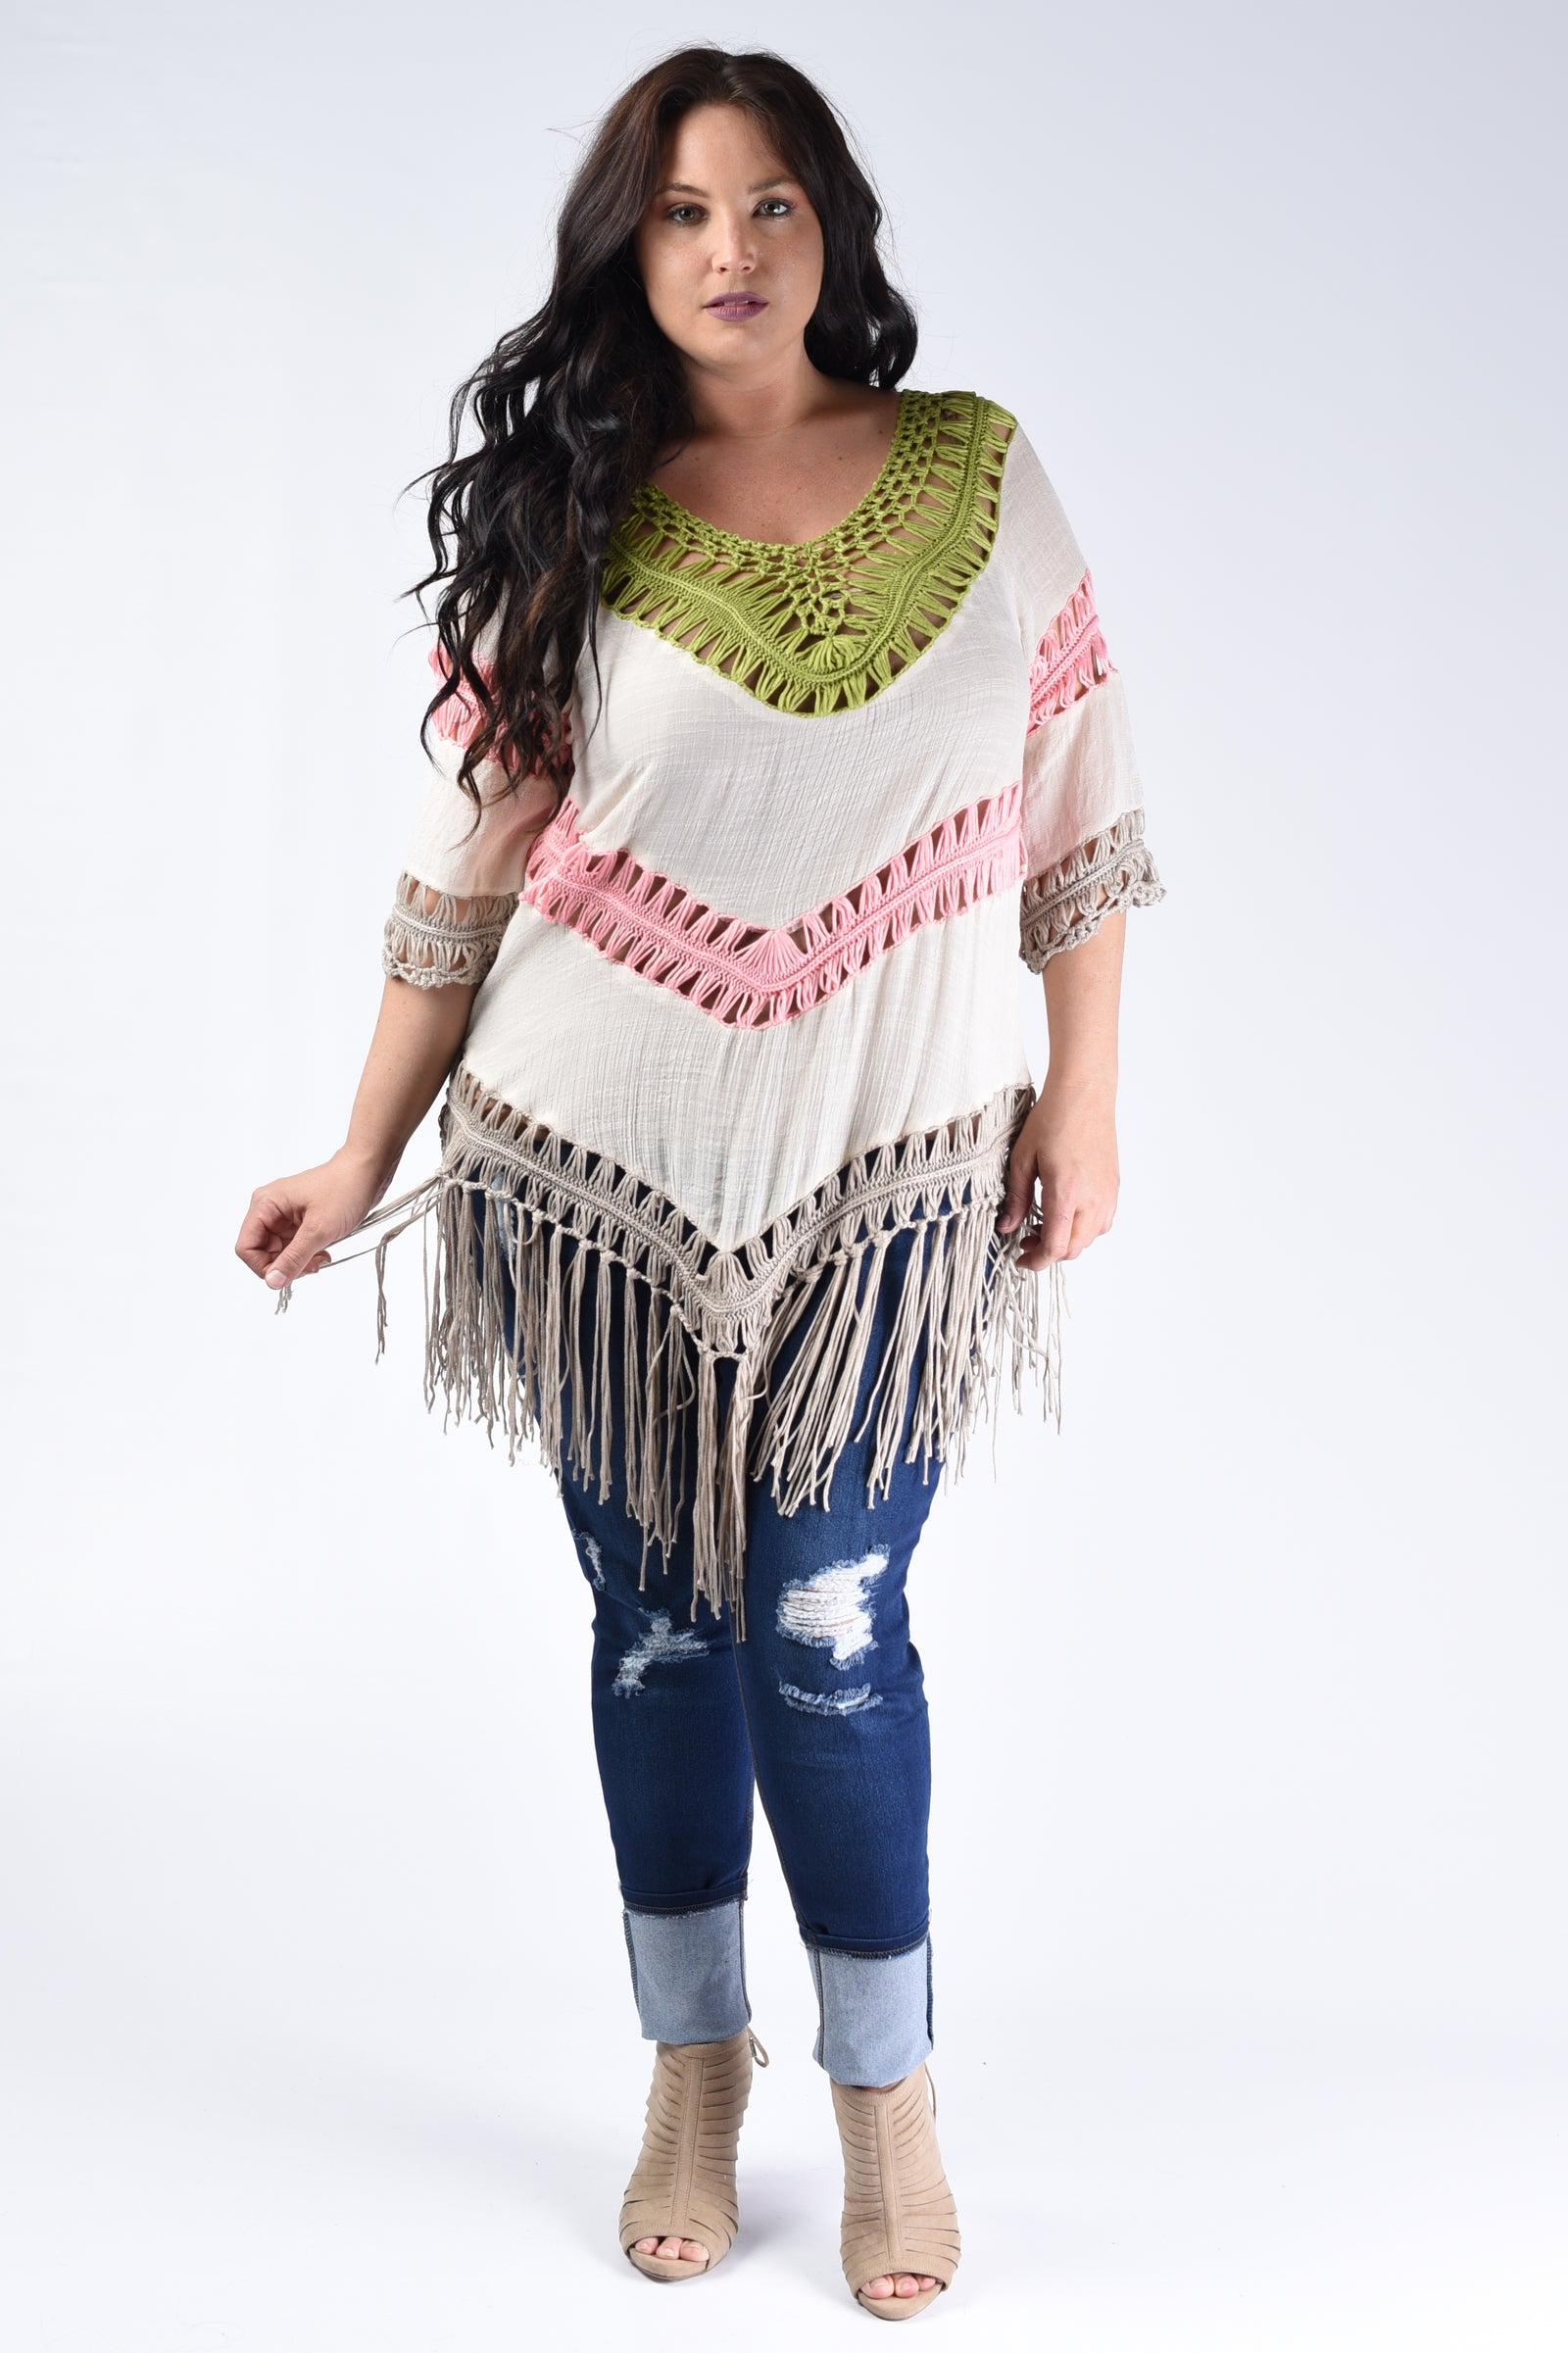 Pink & Lime Crochet Tunic - www.mycurvystore.com - Curvy Boutique - Plus Size